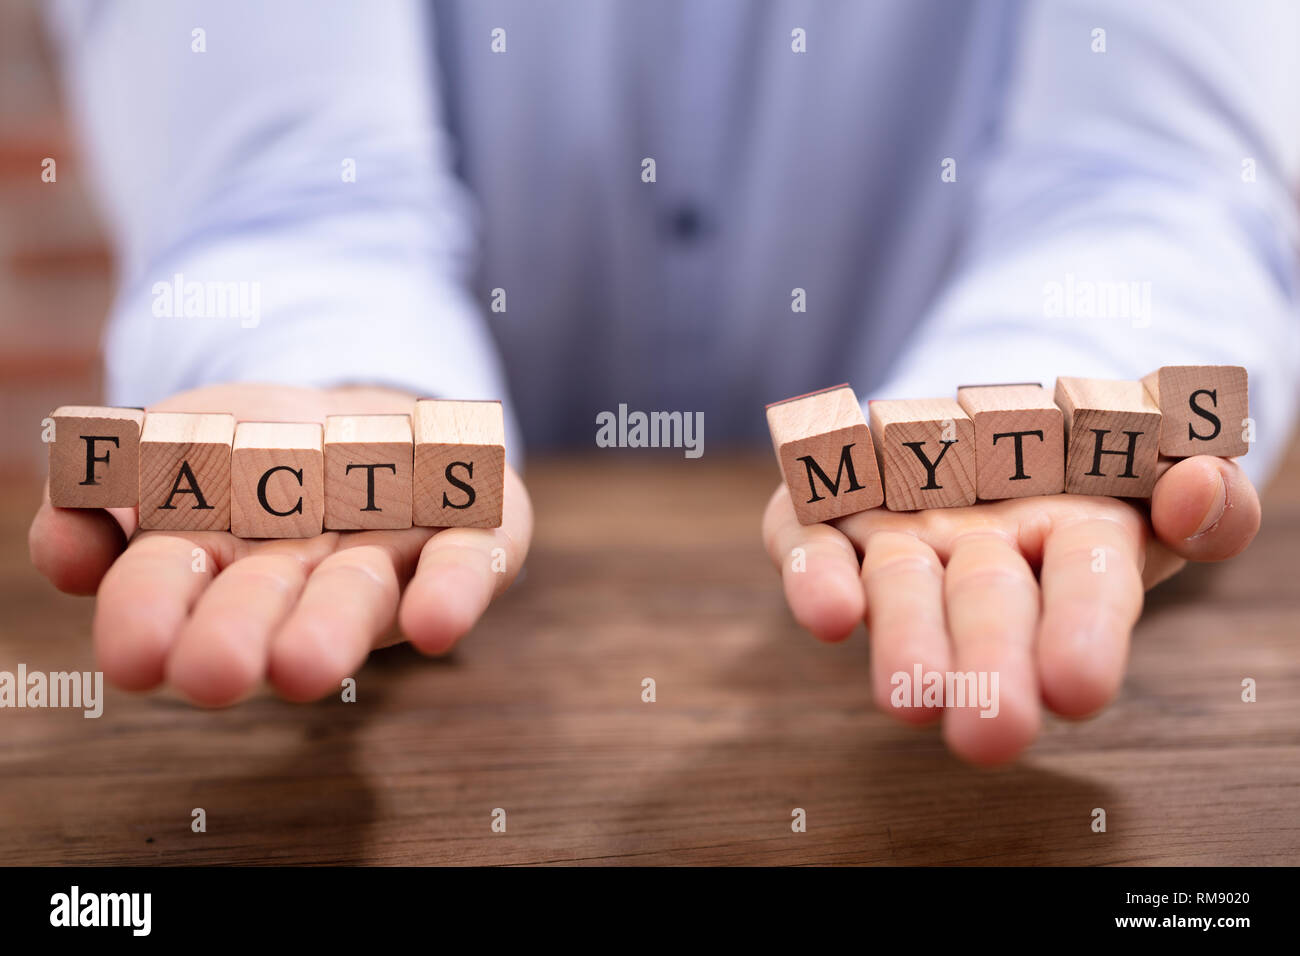 Close-up Businessman's Hand Balancing Facts And Myths Blocks Over Wooden Desk - Stock Image